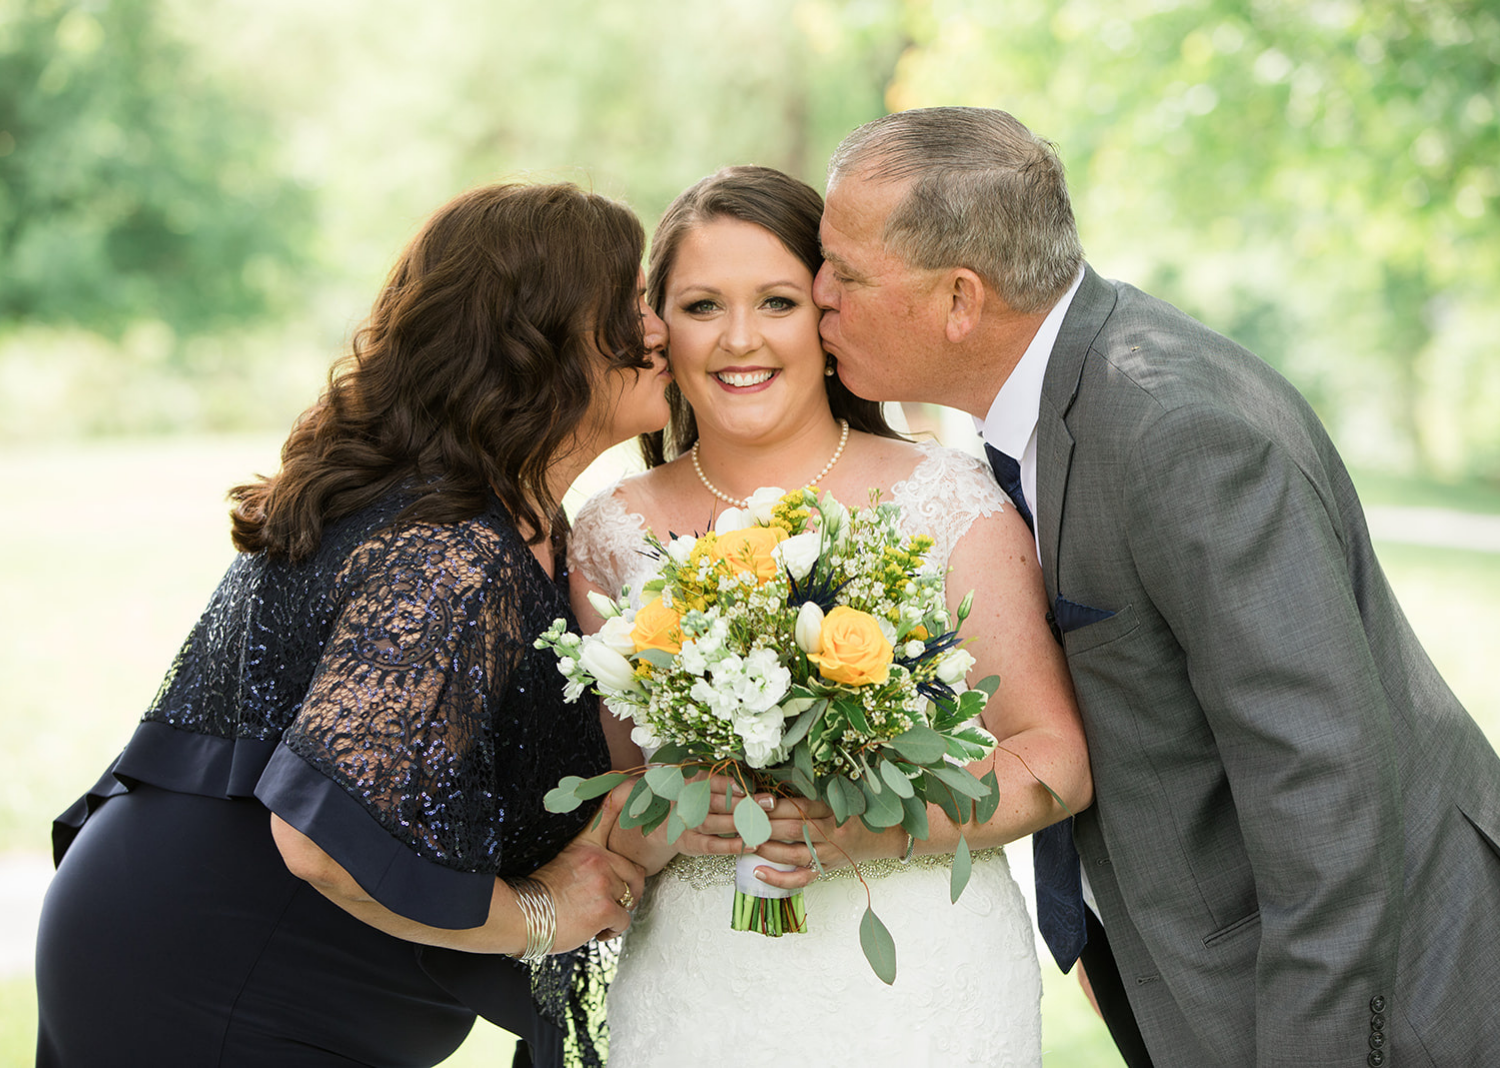 father and mother of the bride kiss her on the cheek